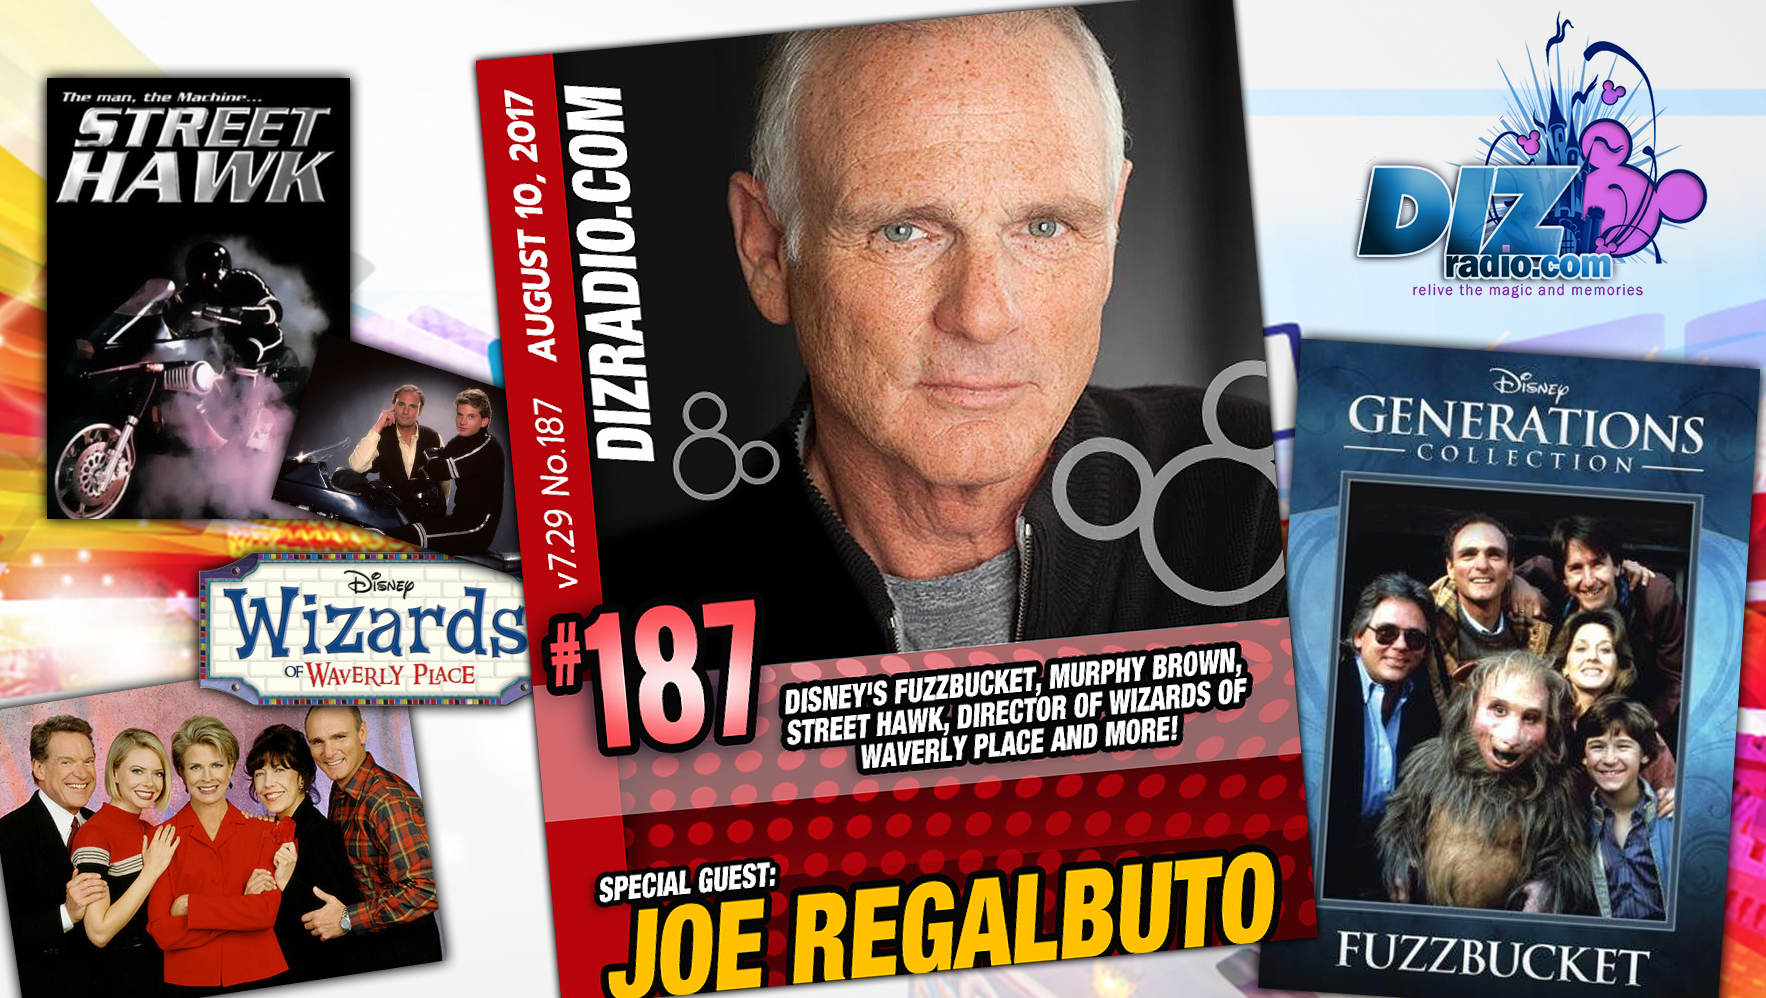 Joe Regalbuto (Fuzzbucket, Murphy Brown, Street Hawk)